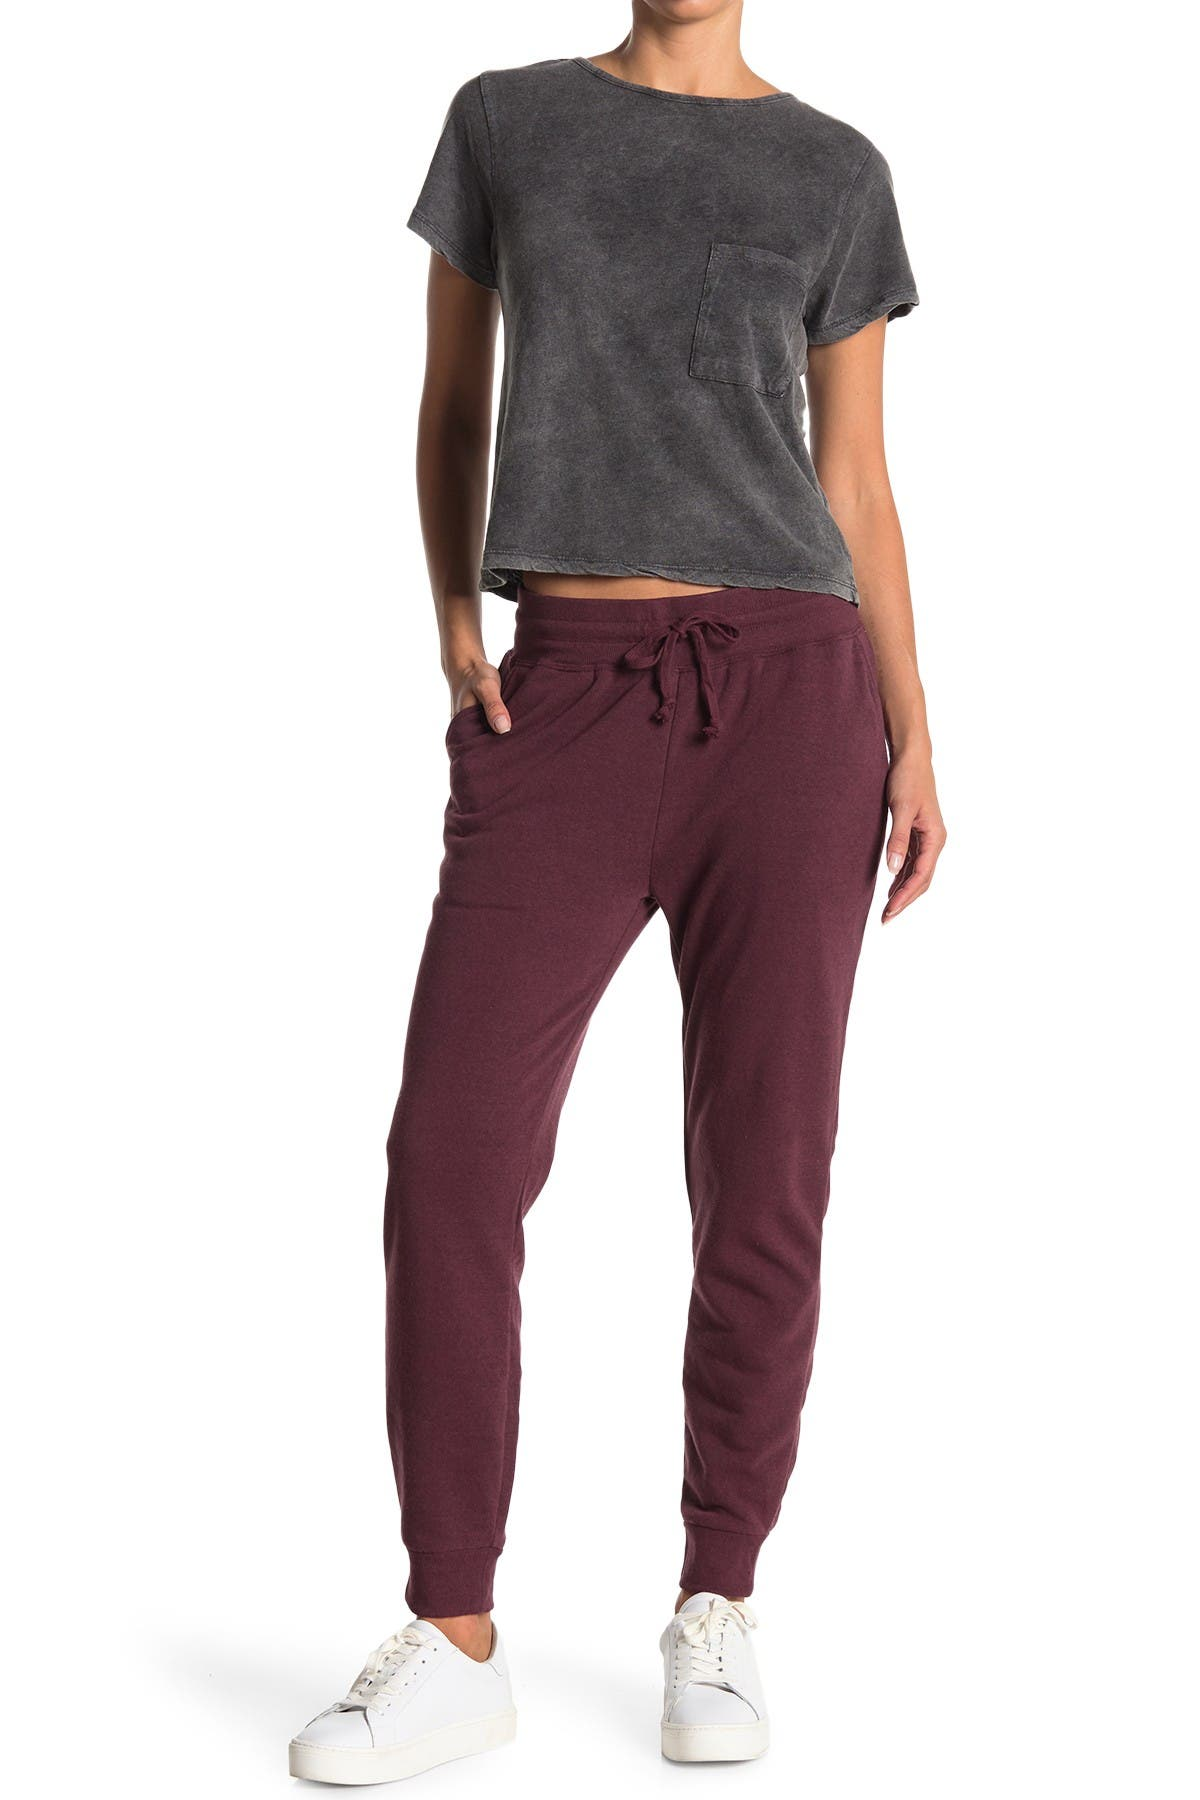 Image of Threads 4 Thought Skinny Solid Fleece Joggers